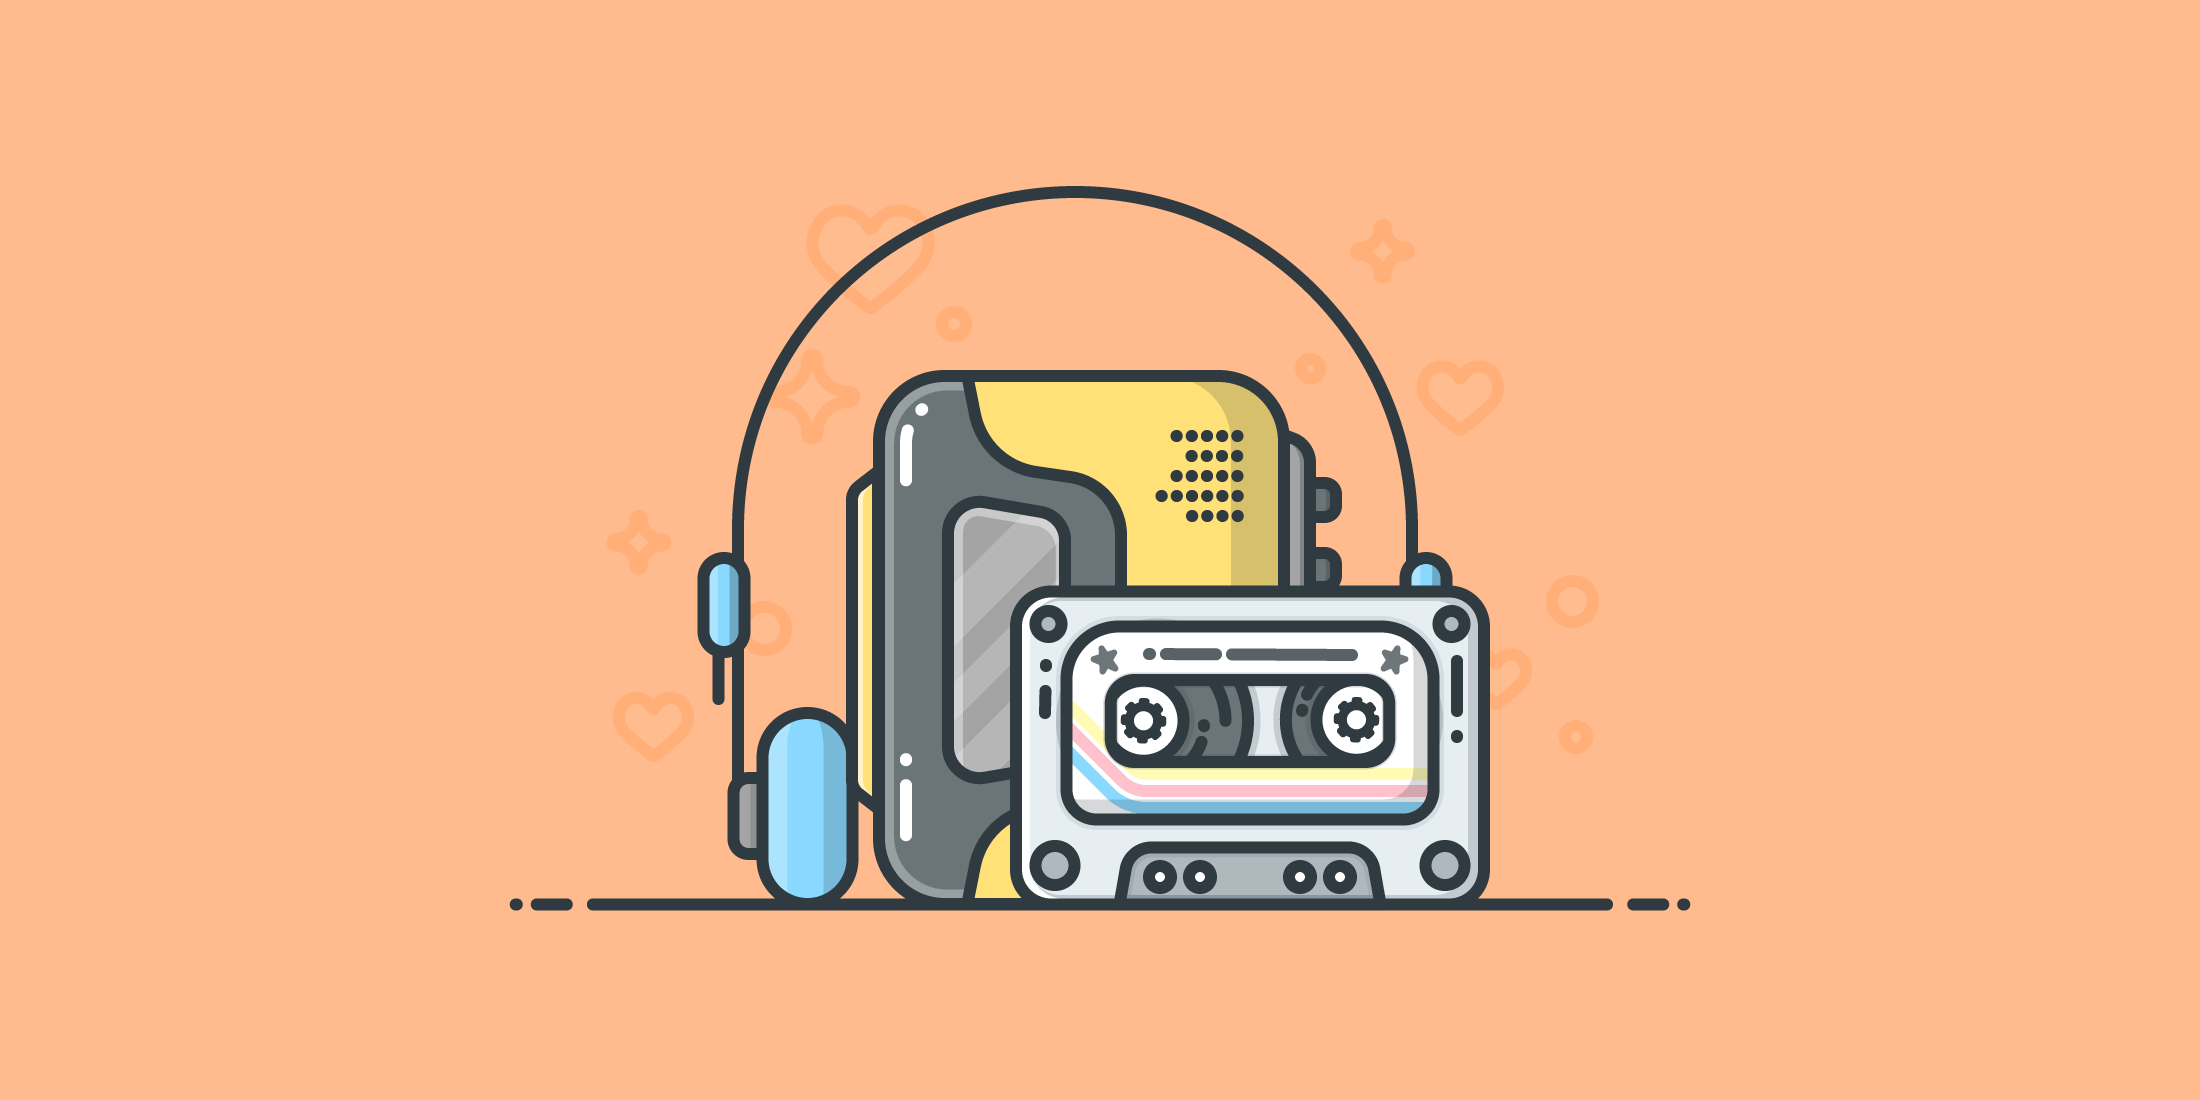 Illustration of a 1980's portable tape player